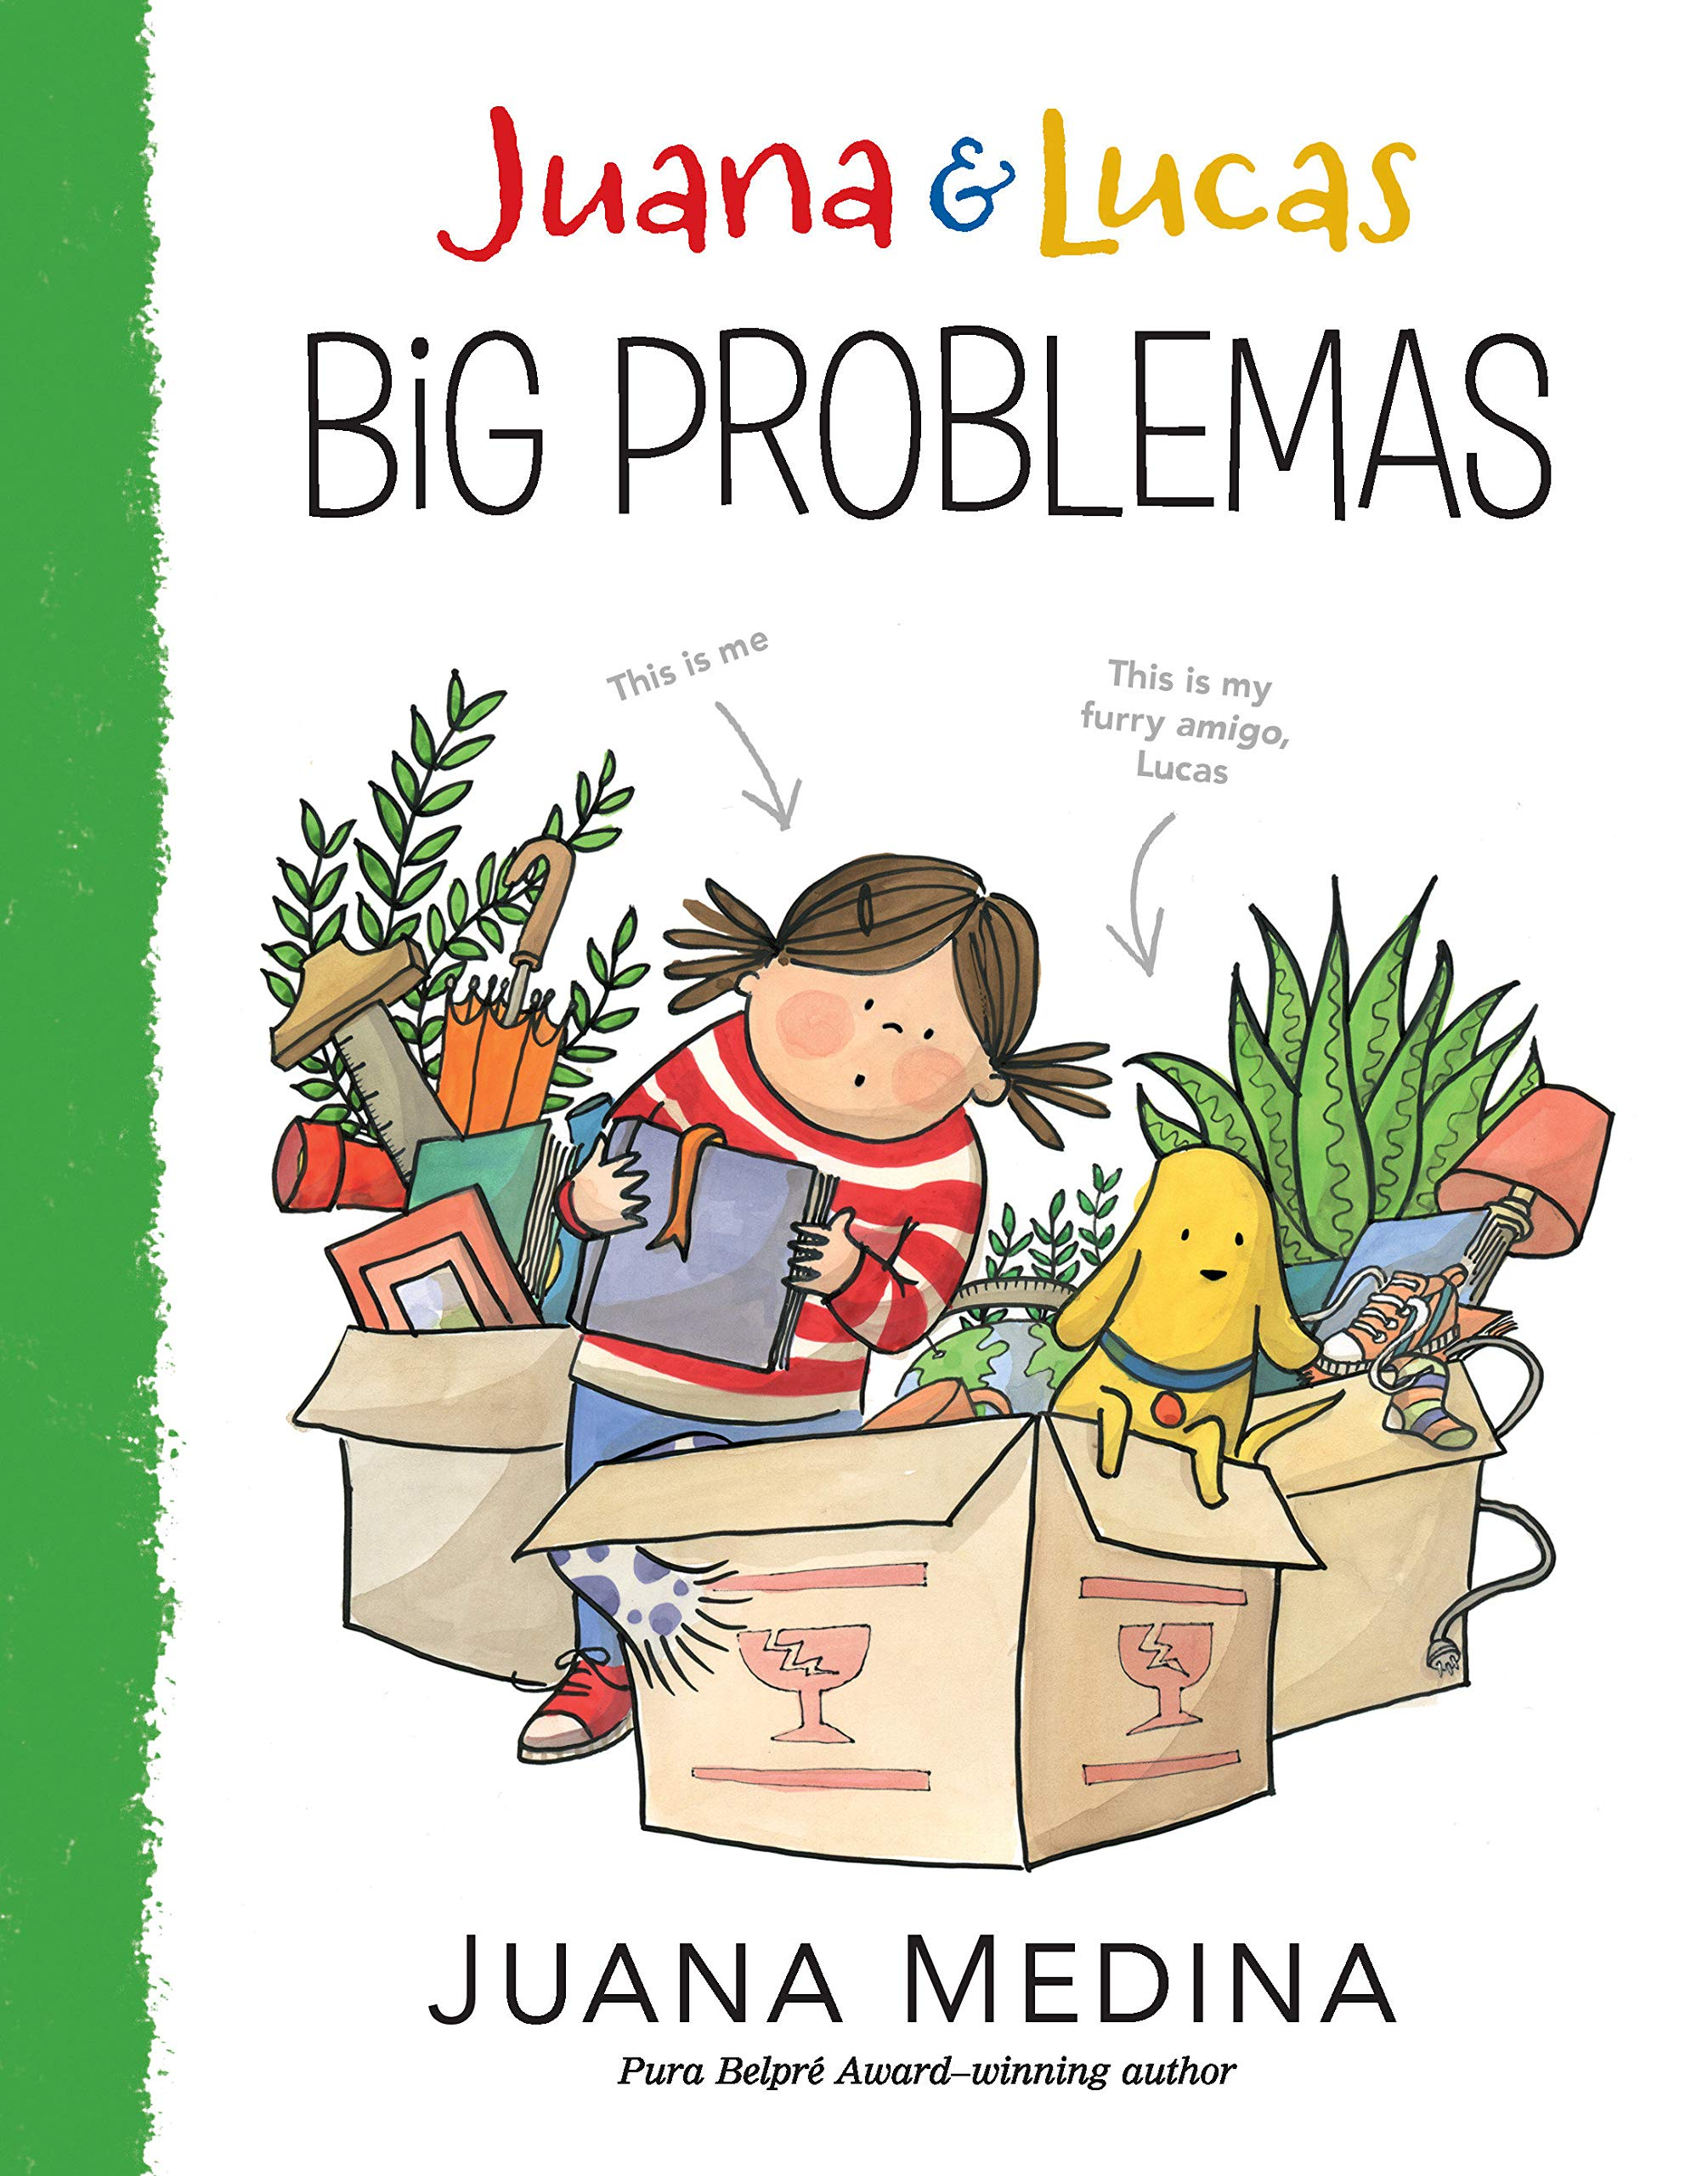 Image result for juana and lucas big problemas amazon